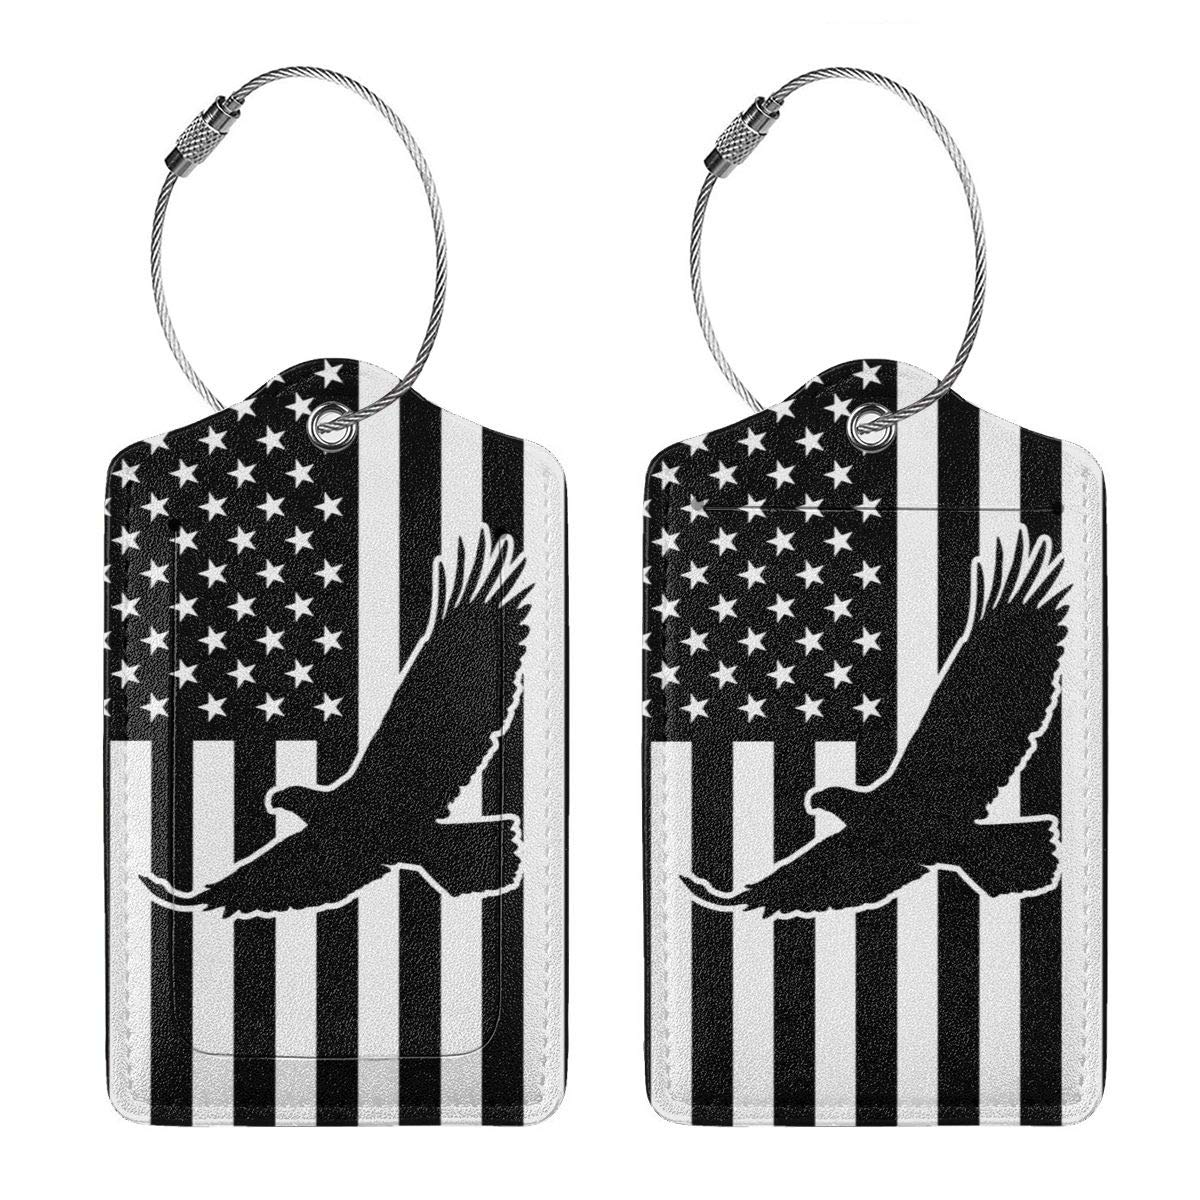 GoldK American Flag Eagle Leather Luggage Tags Baggage Bag Instrument Tag Travel Labels Accessories with Privacy Cover